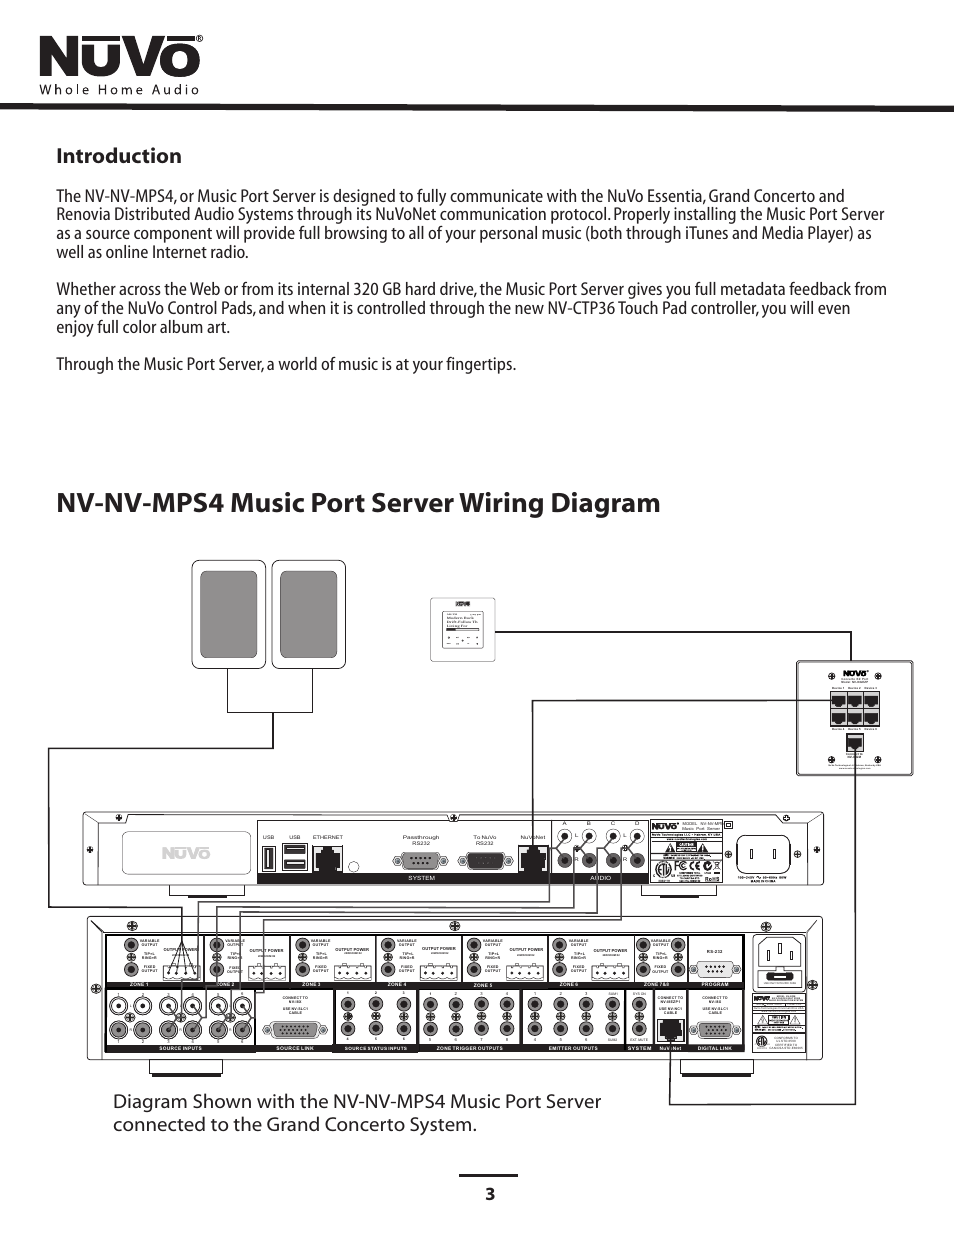 Wiring Diagram Nv Mps4 Music Port Server Your Home For Introduction Nuvo User Manual Page 7 24